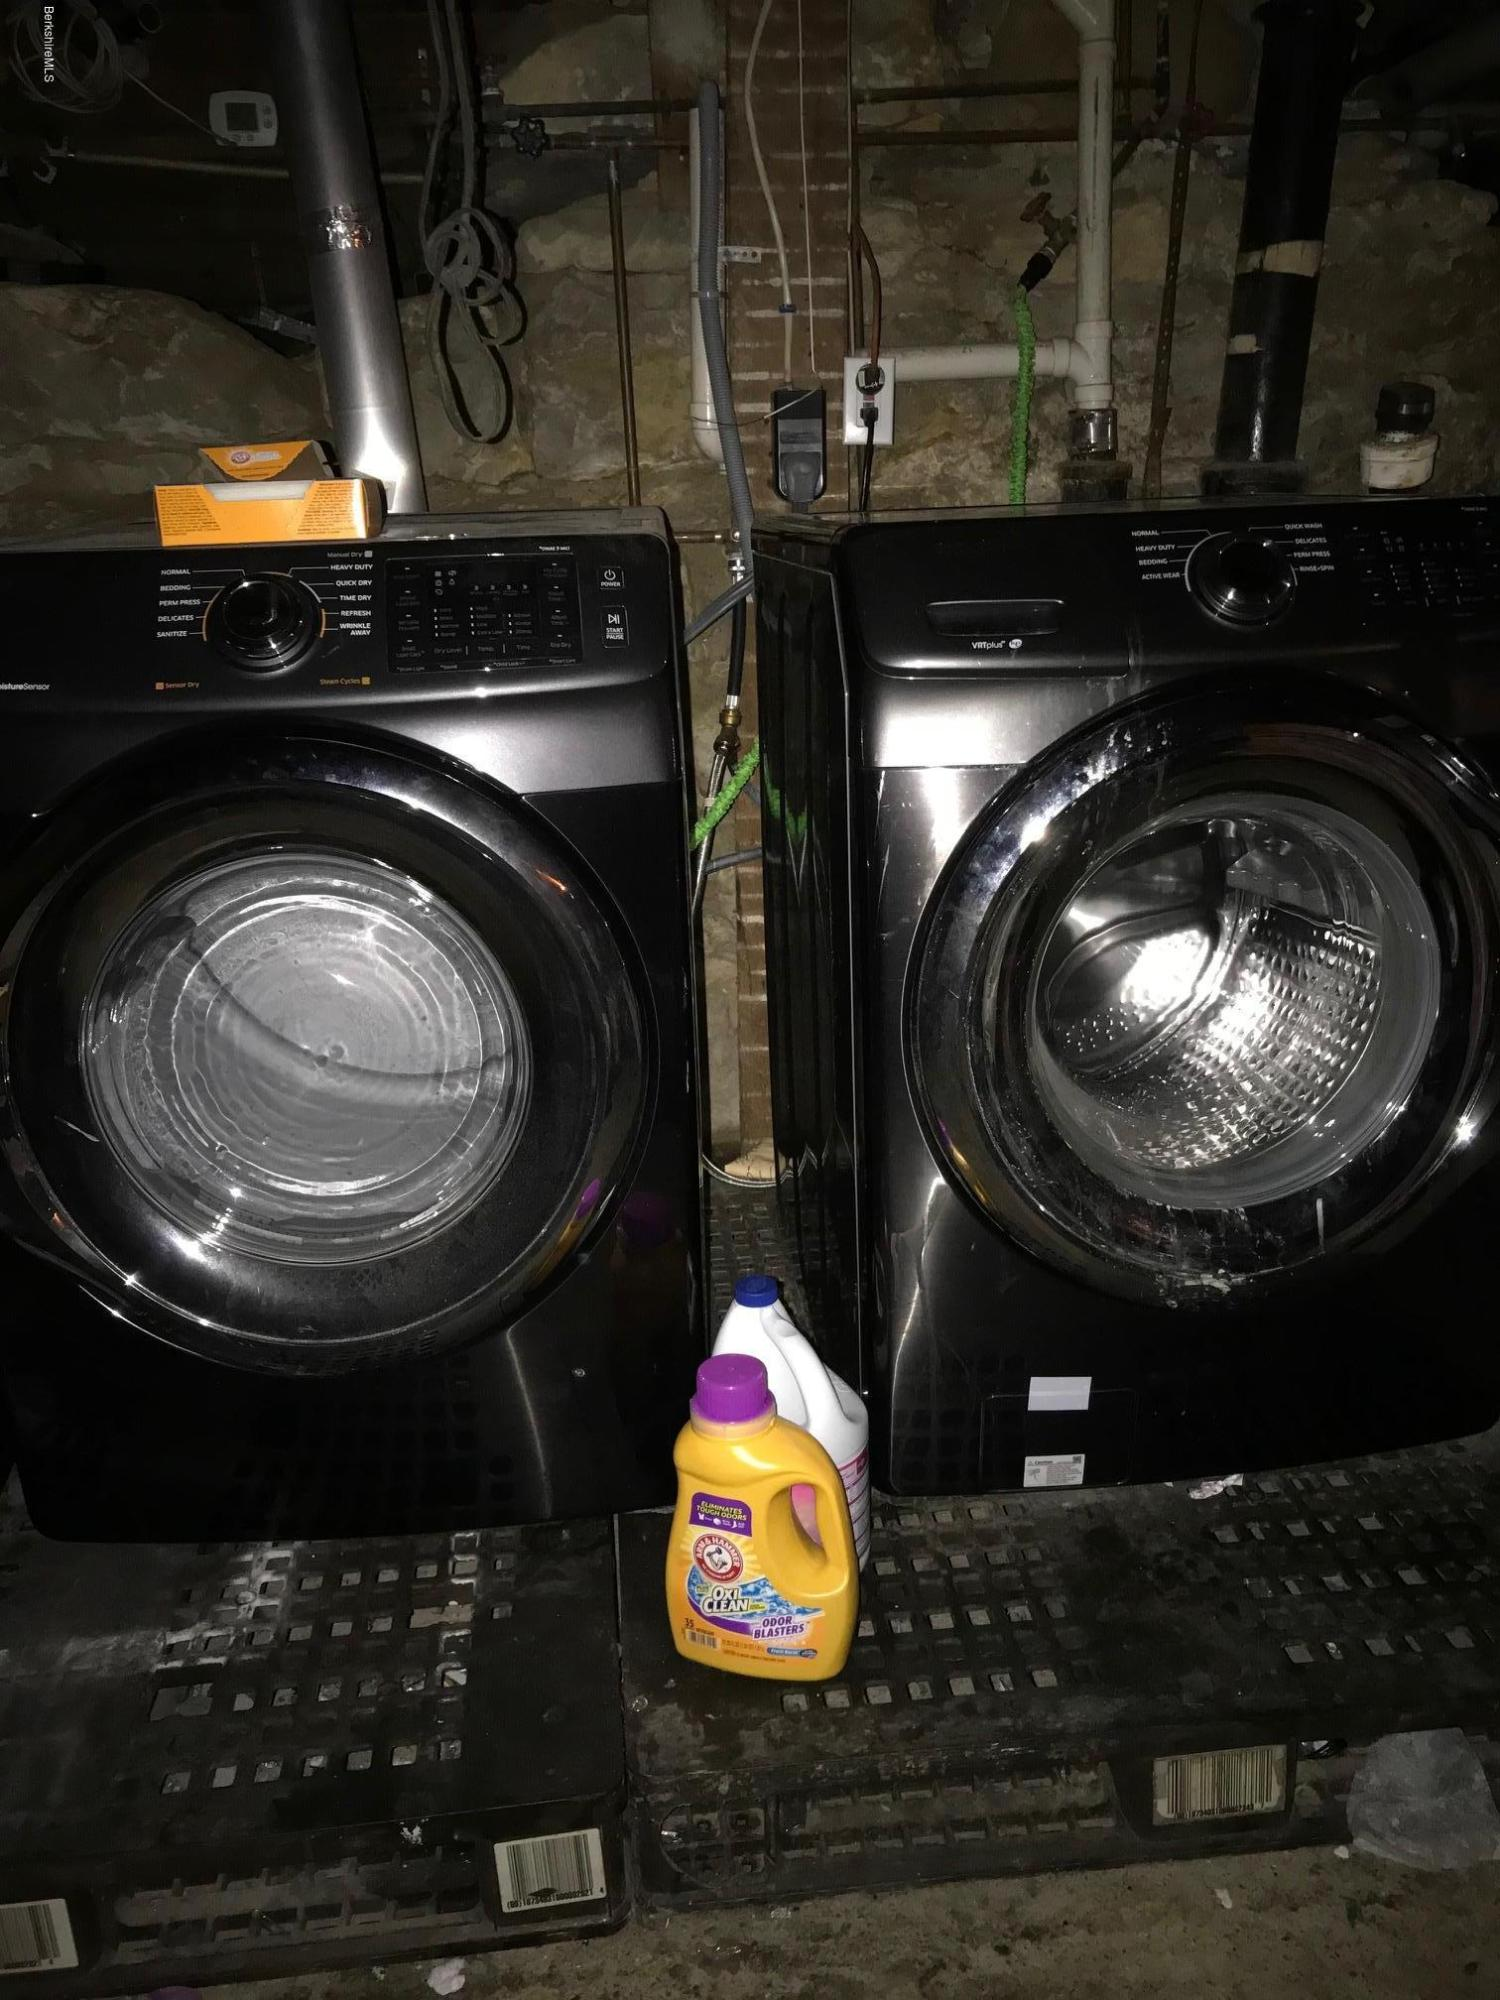 Washer dryer can stay